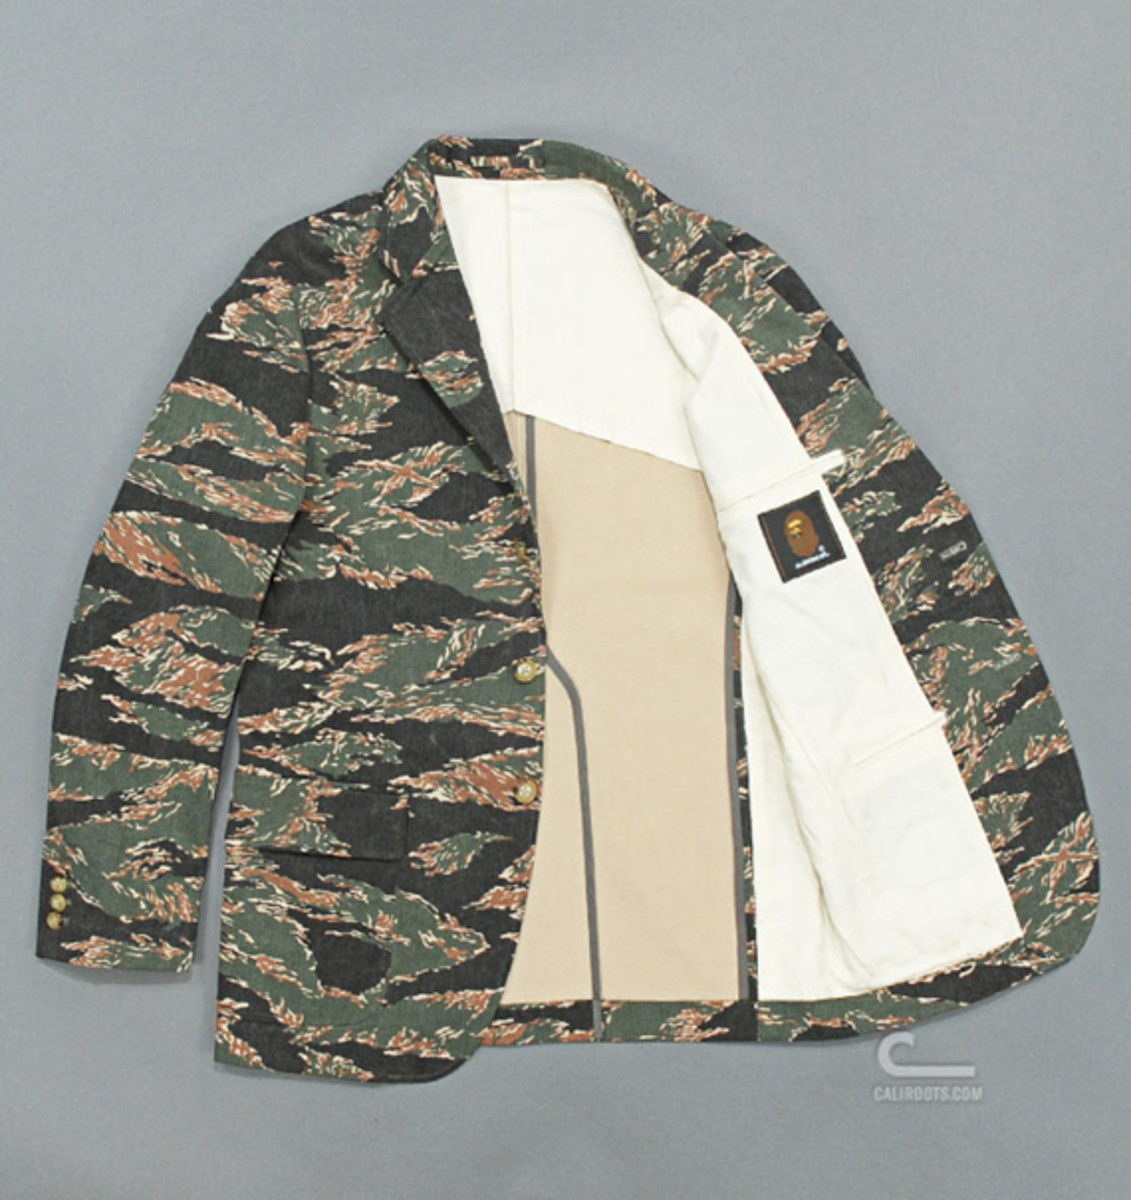 mr-bathing-ape-3-button-jacket-tiger-camouflage-03